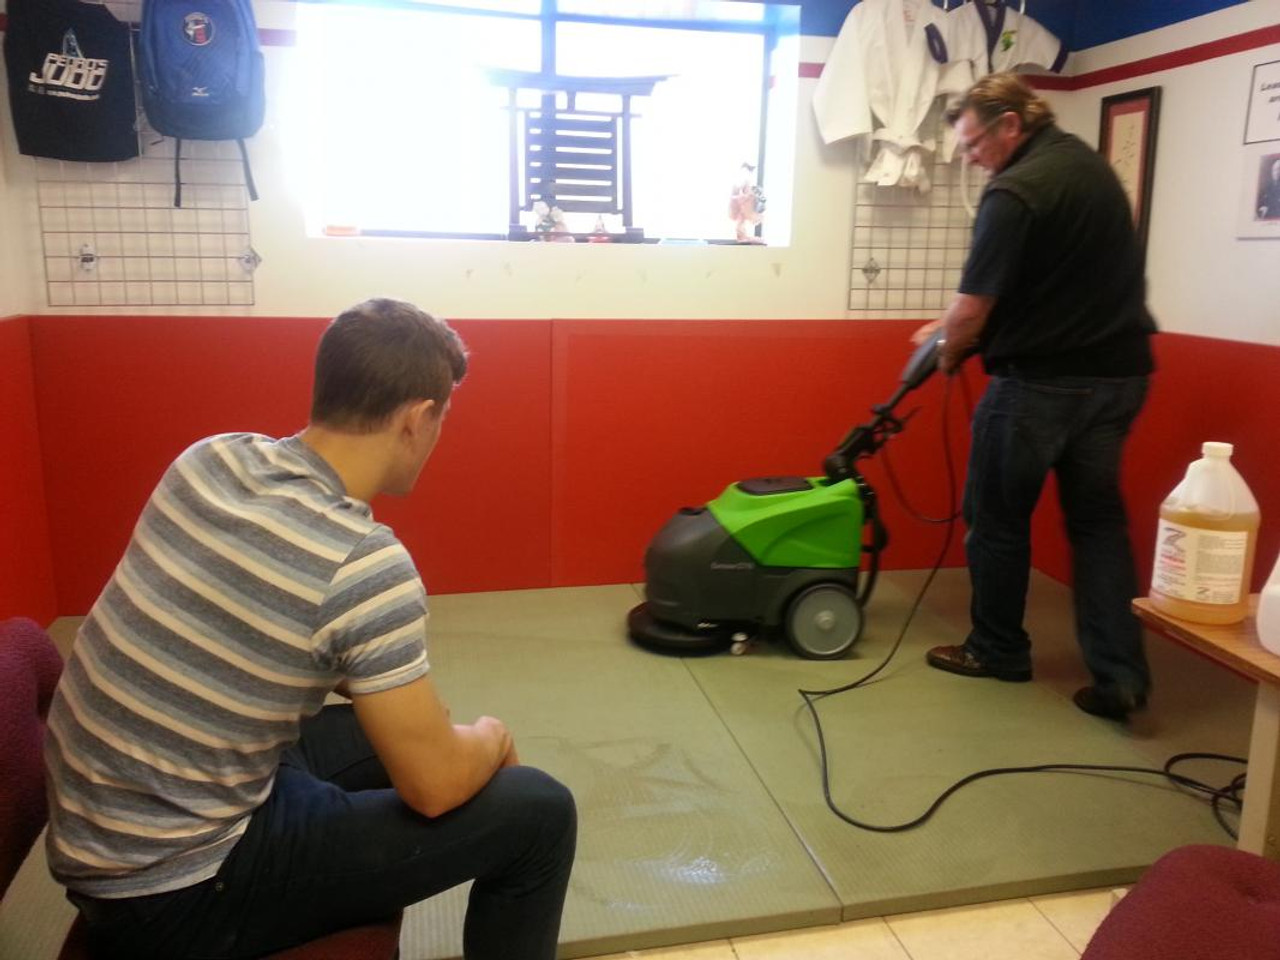 Using the CT15 with microfiber pads to clean Judo mats.